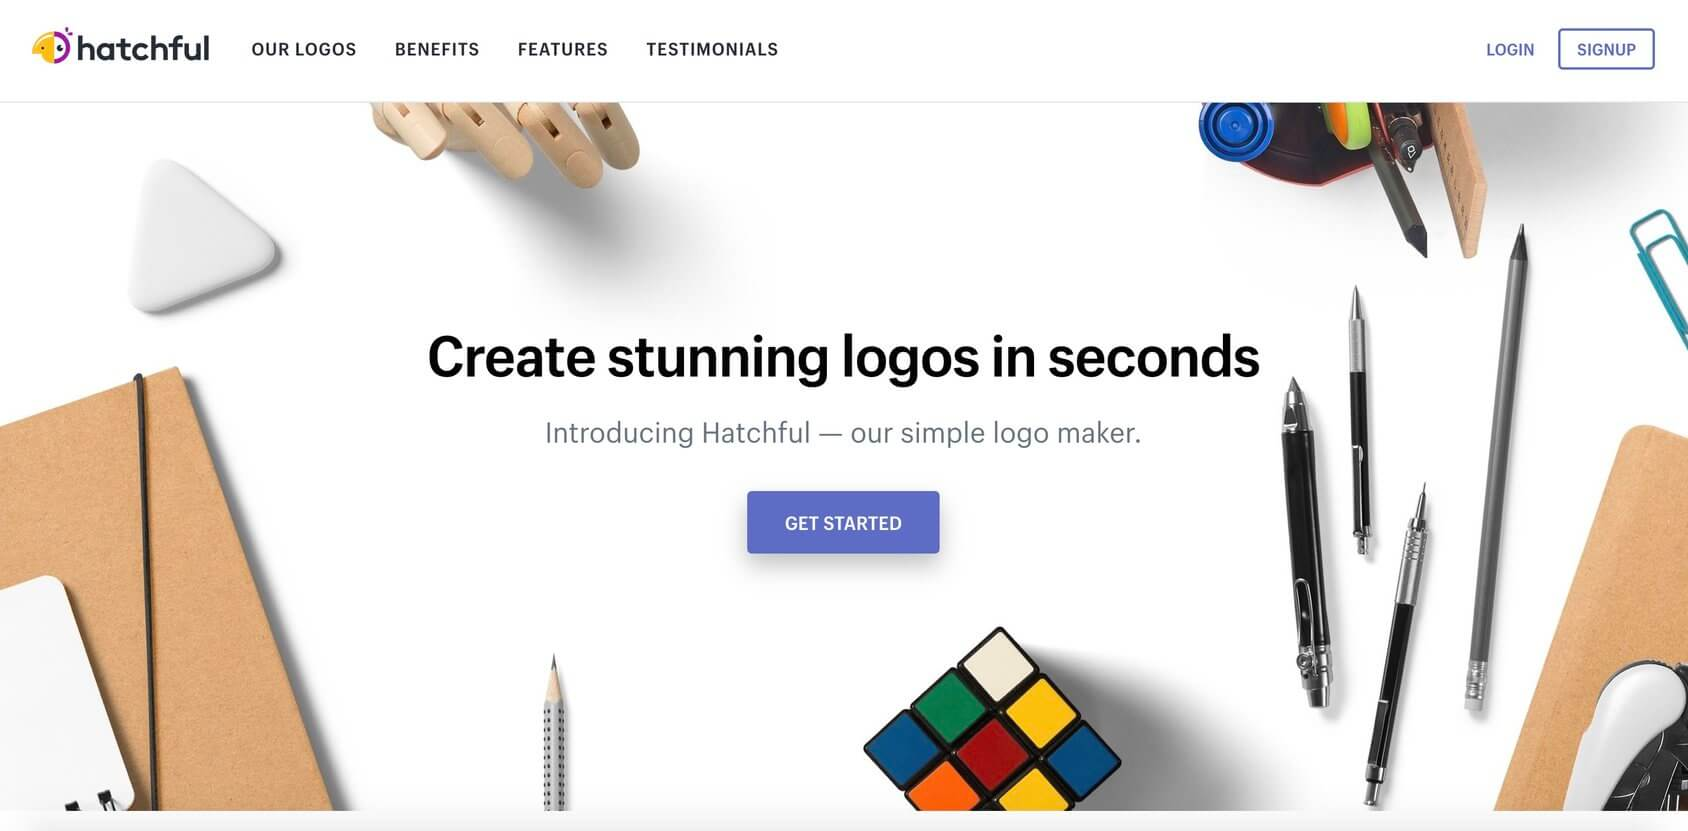 Hatchful by Shopify homepage